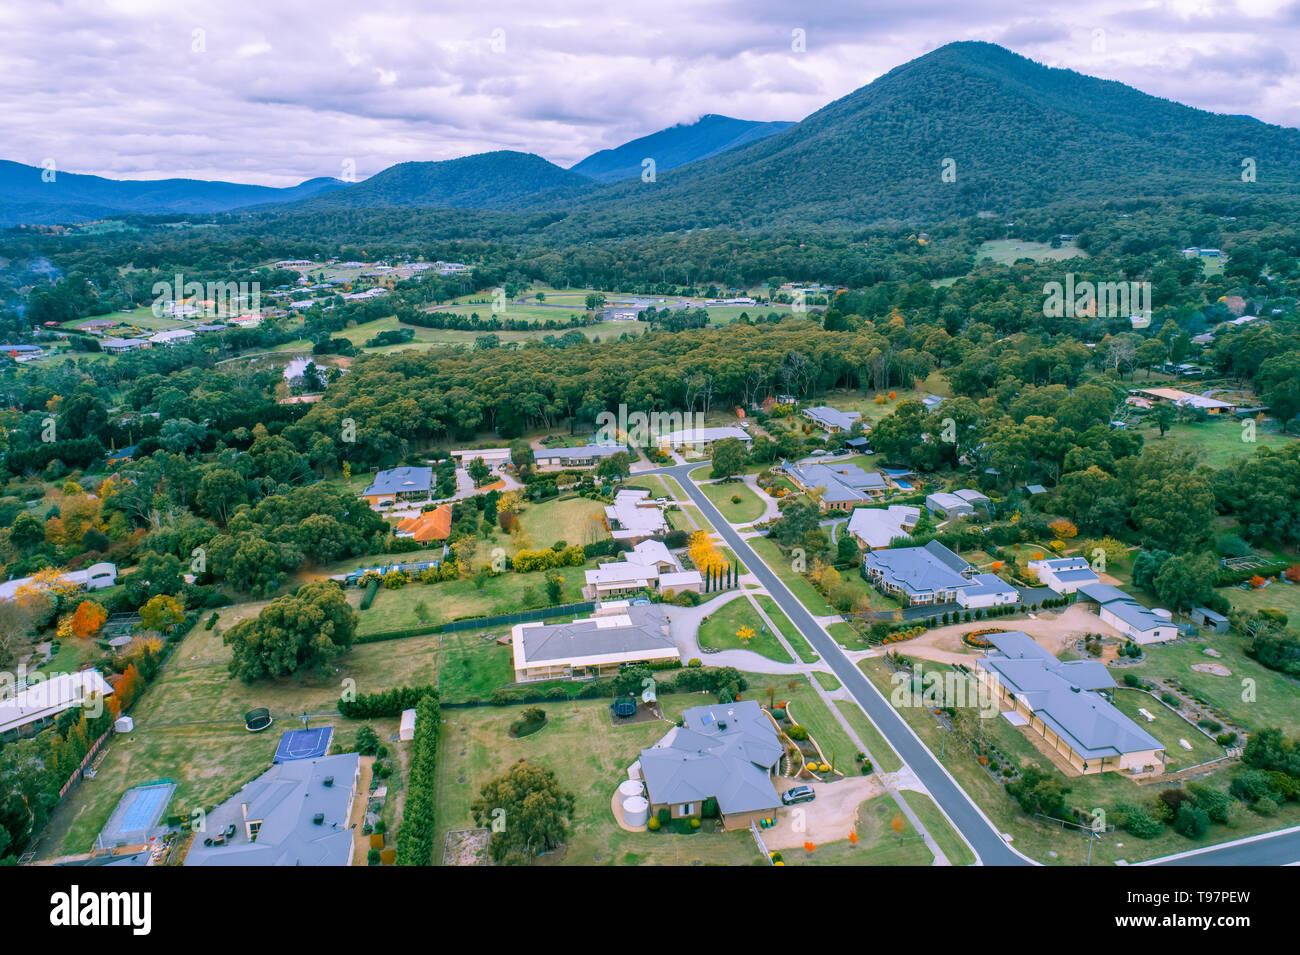 Aerial view of scenic rural living quarters among forest and mountains. Healesville, Australia - Stock Image